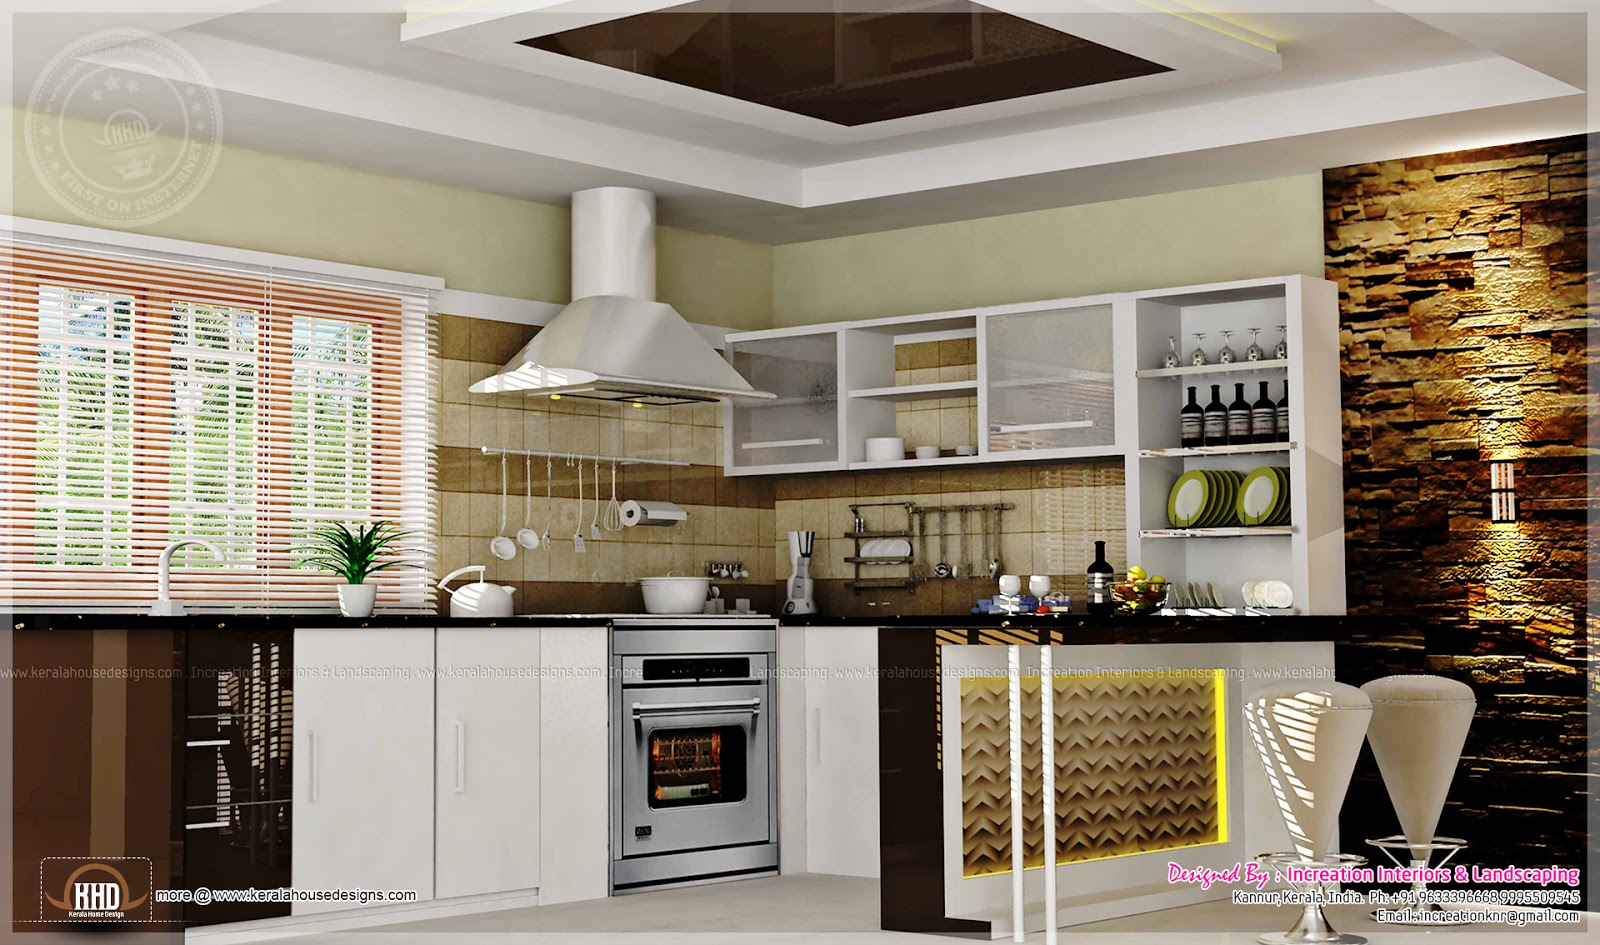 Home interior designs by increation kerala home design and floor plans Interior design ideas for kerala houses